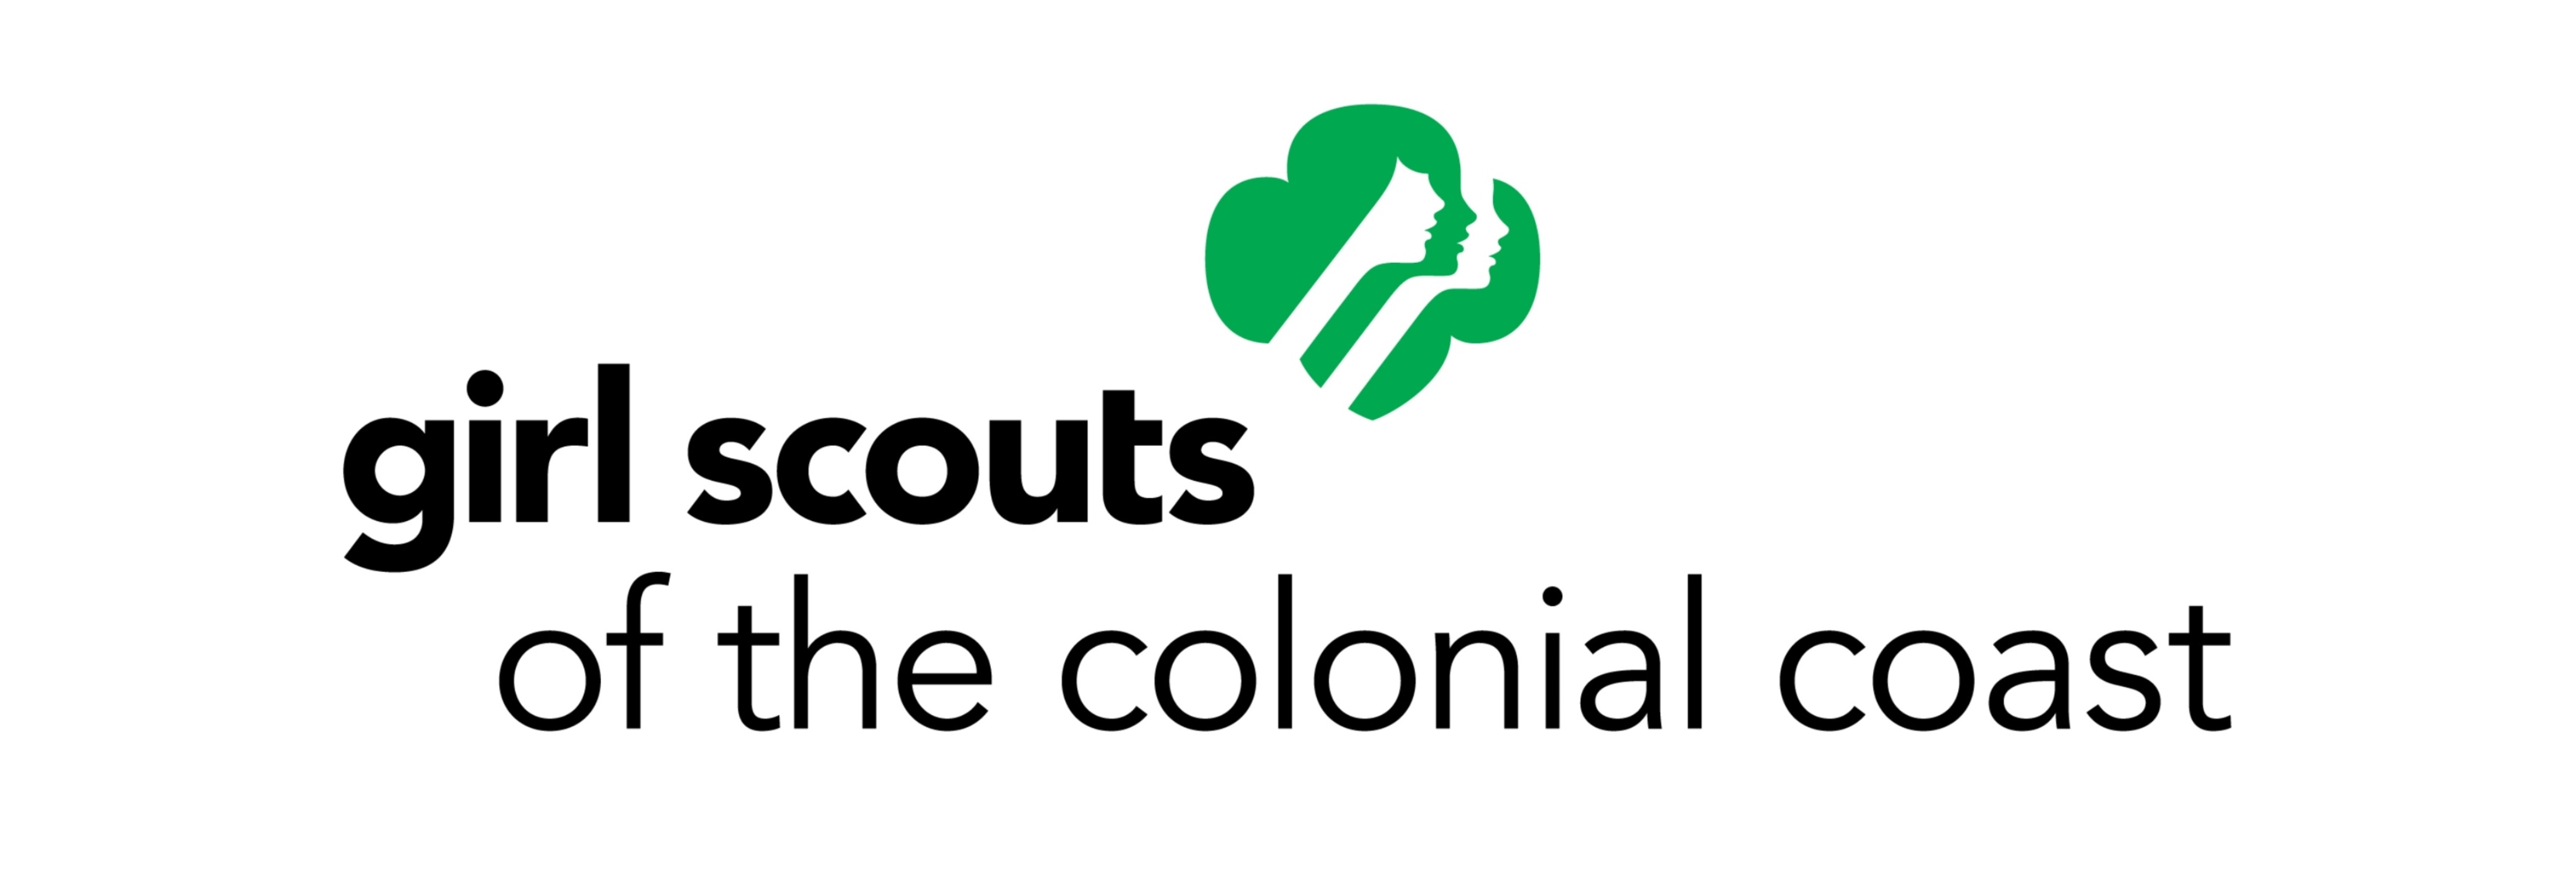 Girls Scouts of the Colonial Coast Host Summer Camp Open Houses